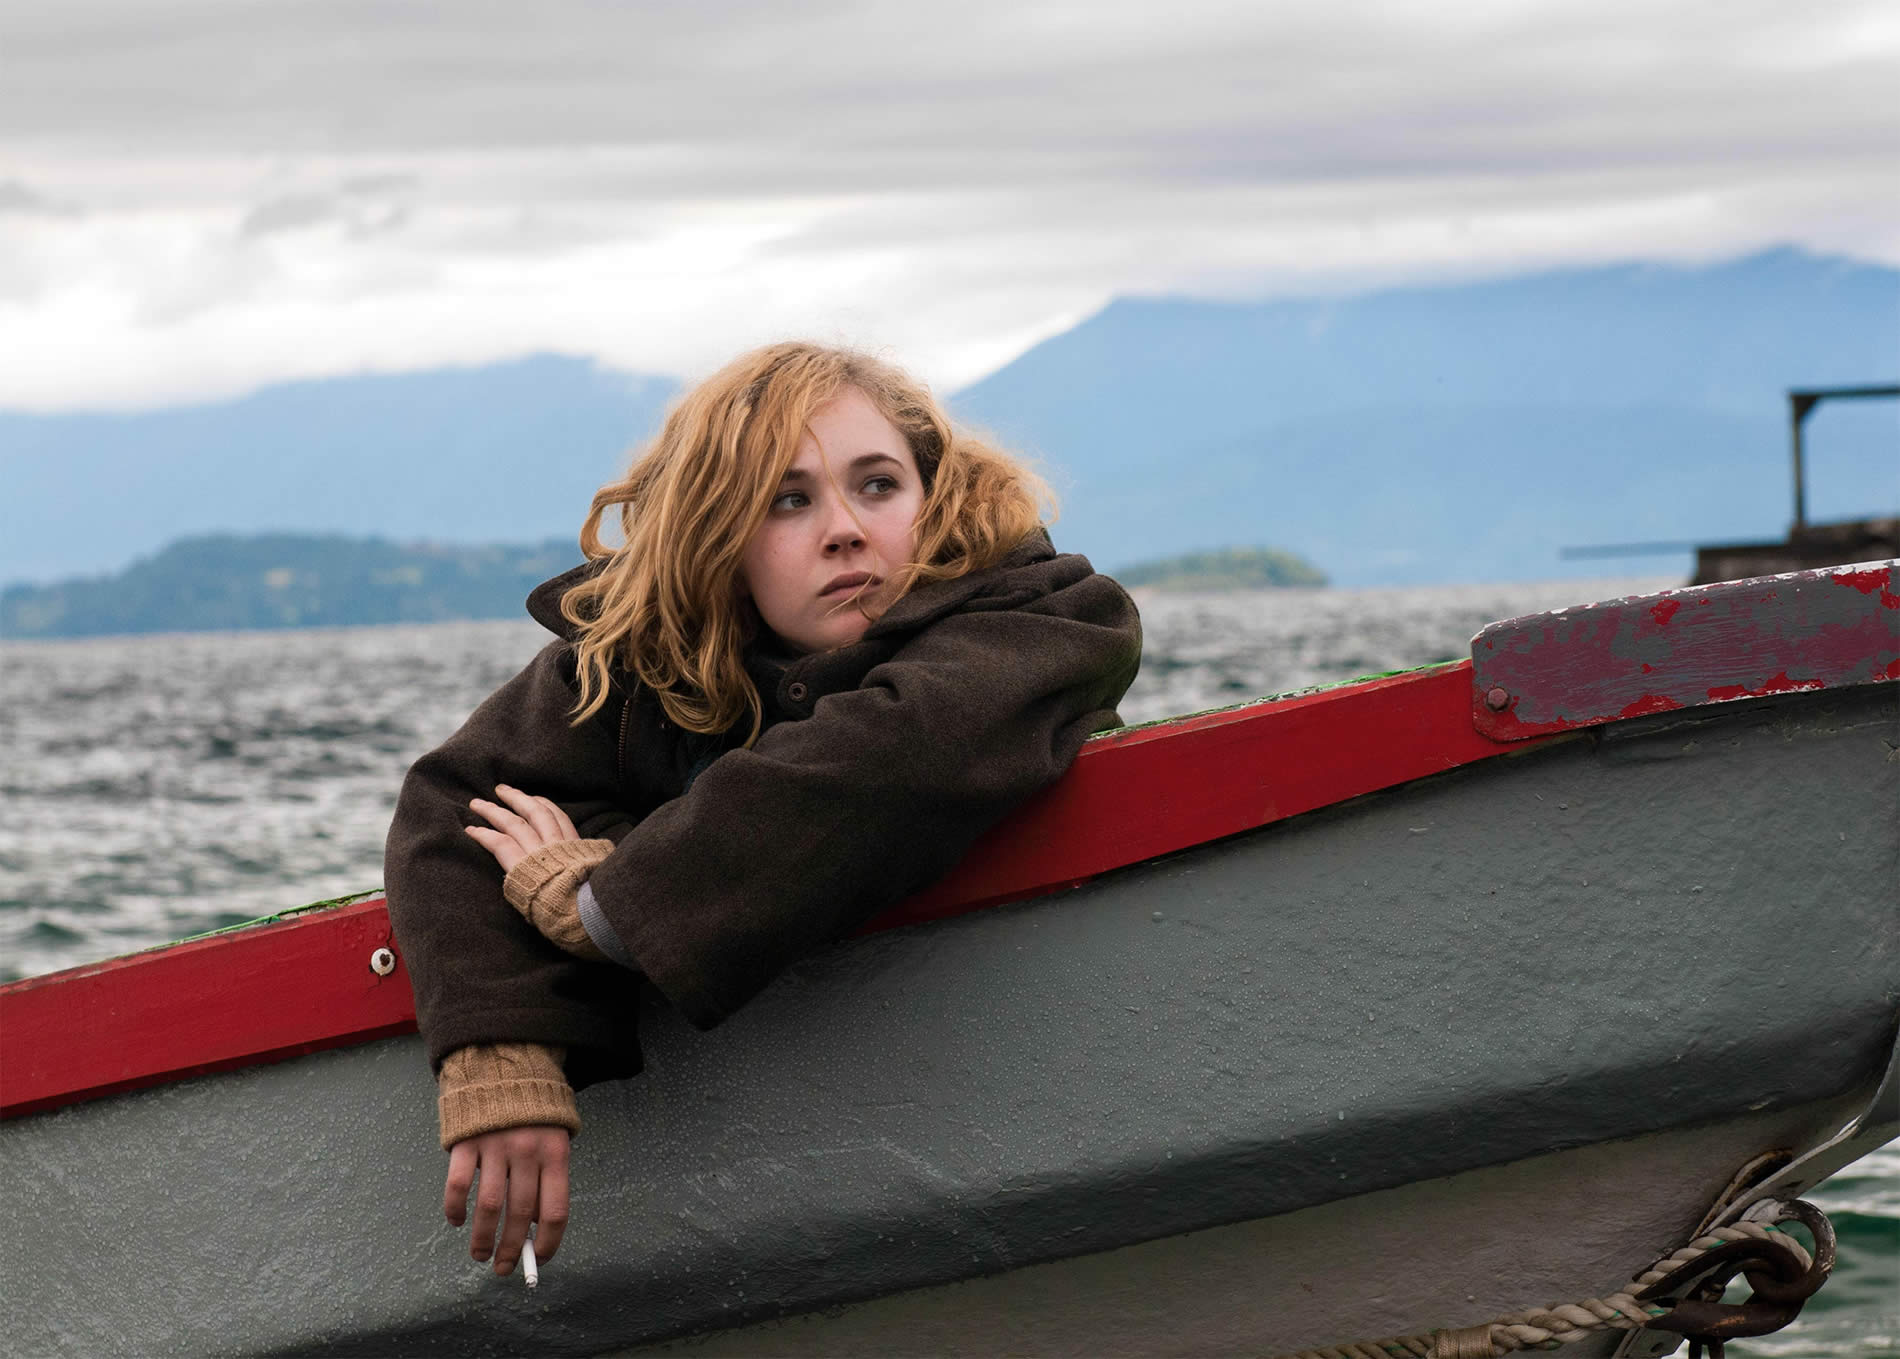 juno temple on a boat smoking in magic magic movie